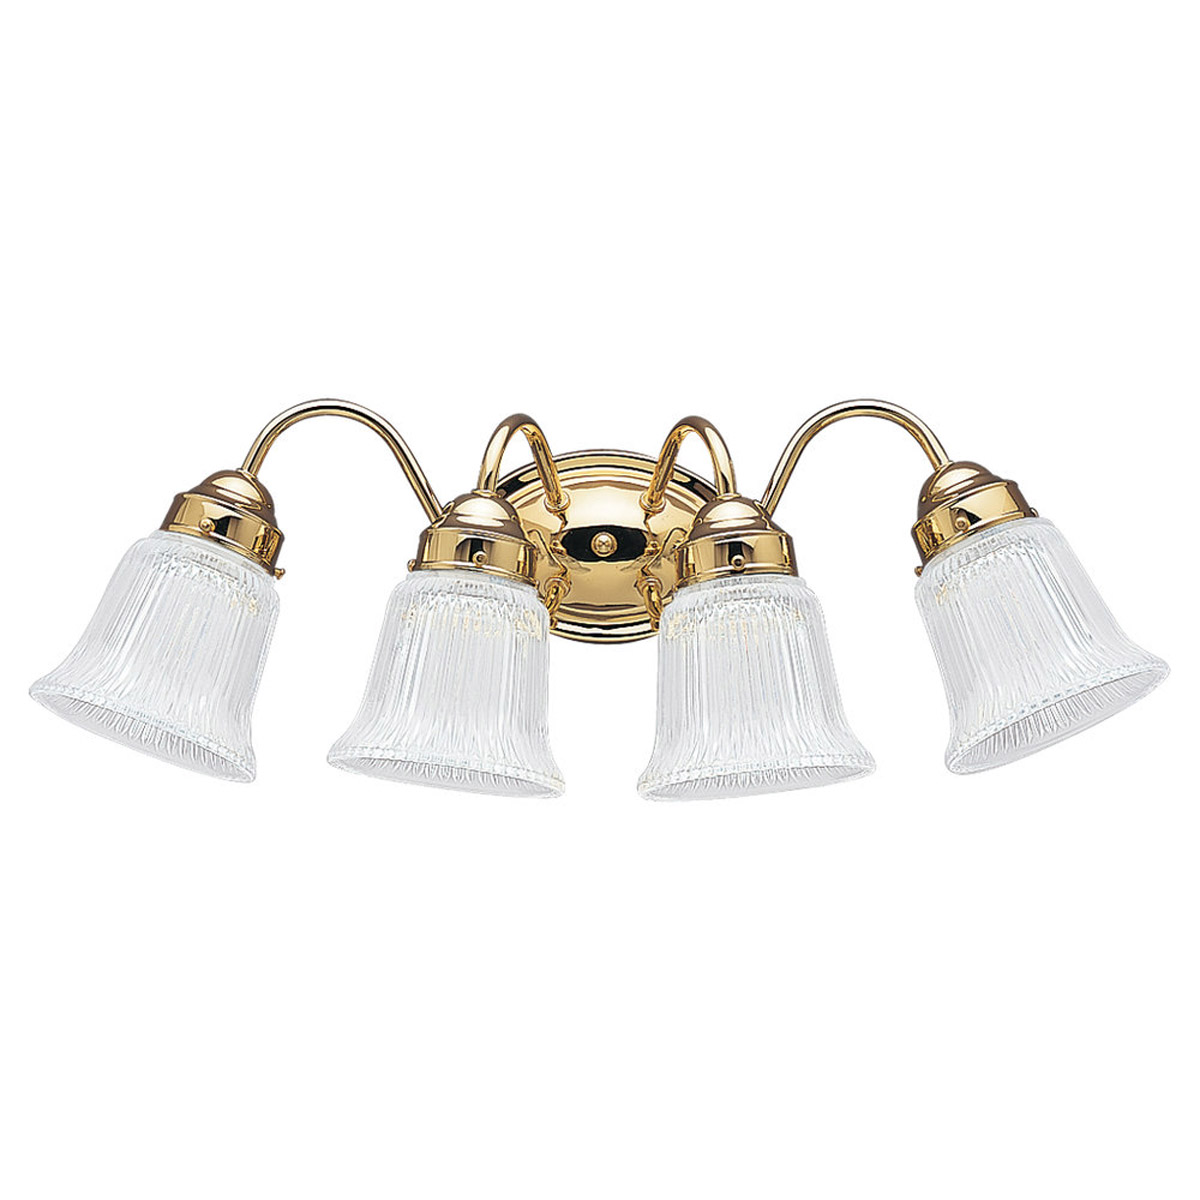 Sea Gull Lighting Brookchester 4 Light Bath Vanity in Polished Brass 4873-02